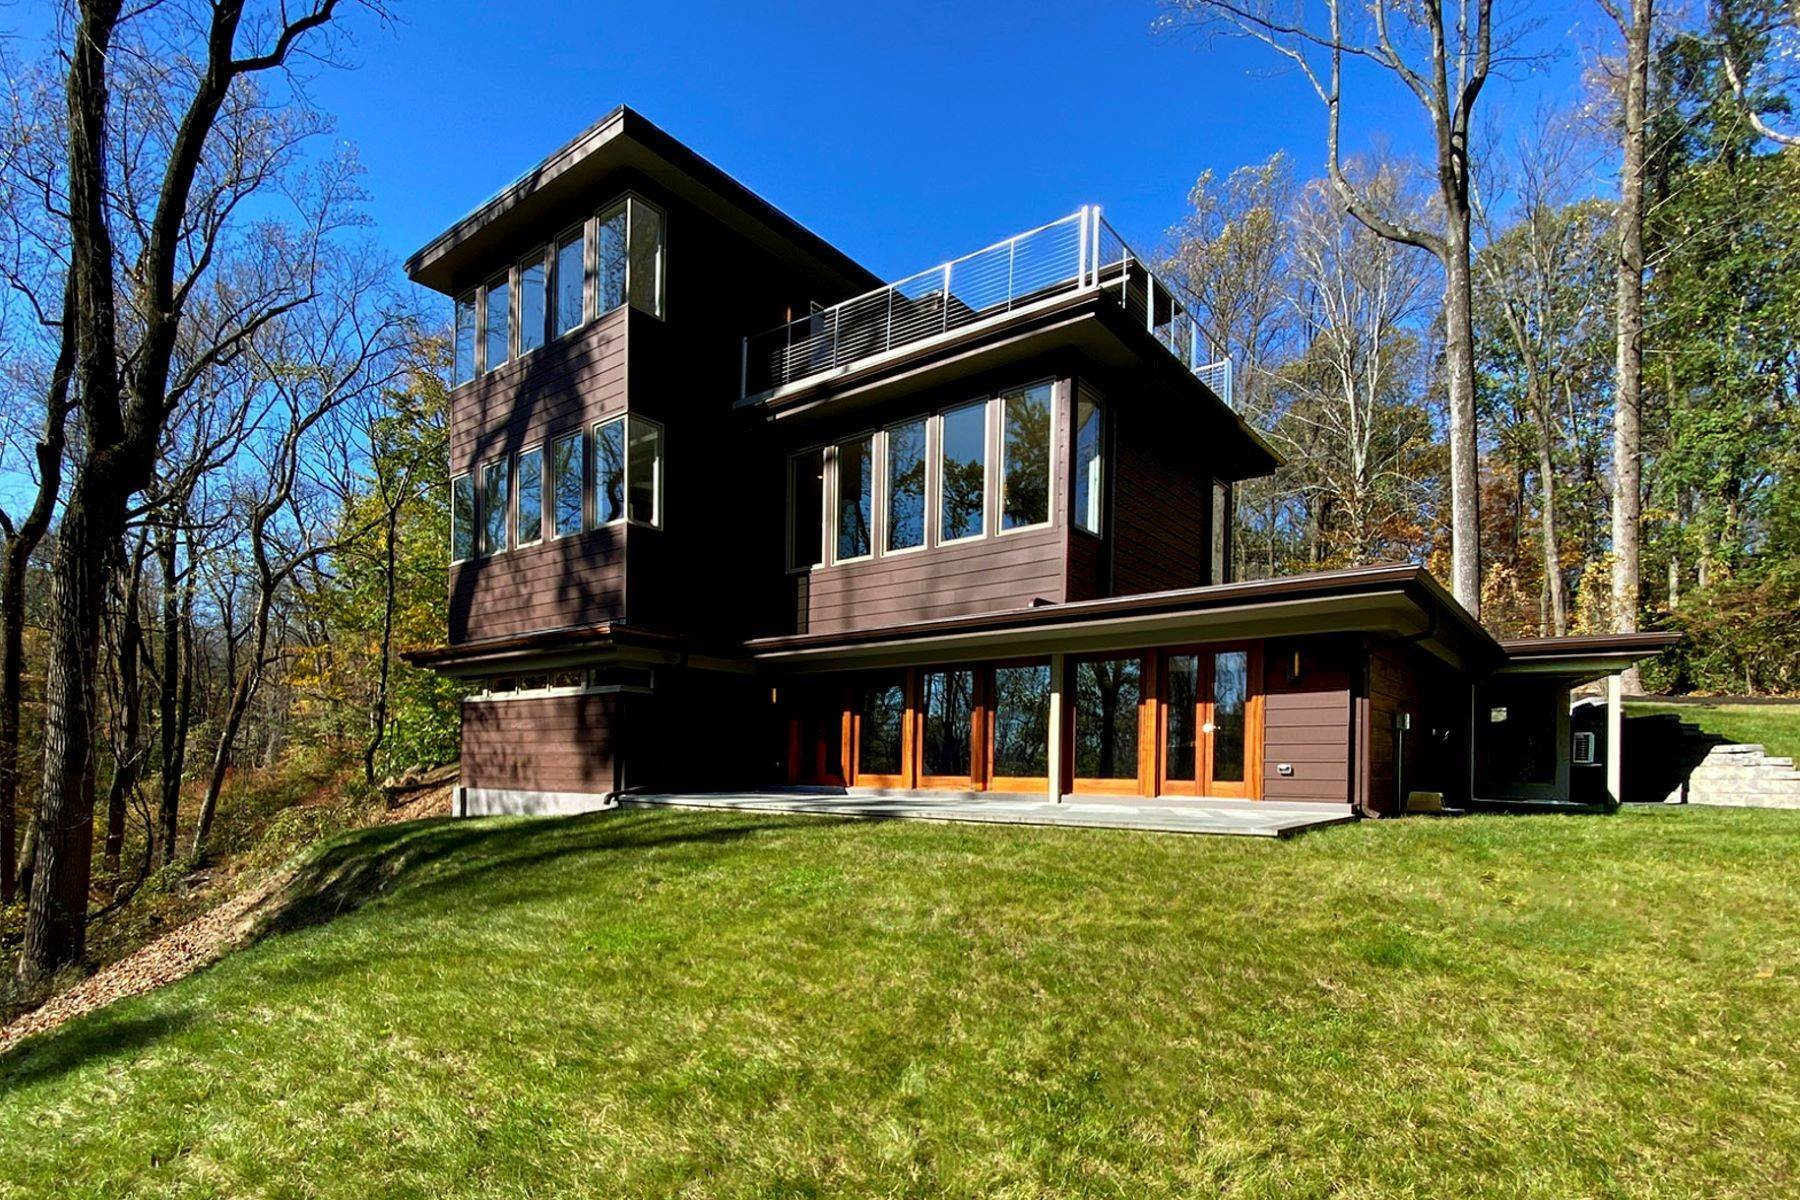 Single Family Homes for Sale at Mid-Century Design, Rediscovered 144 Drakes Corner Road, Princeton, New Jersey 08540 United States